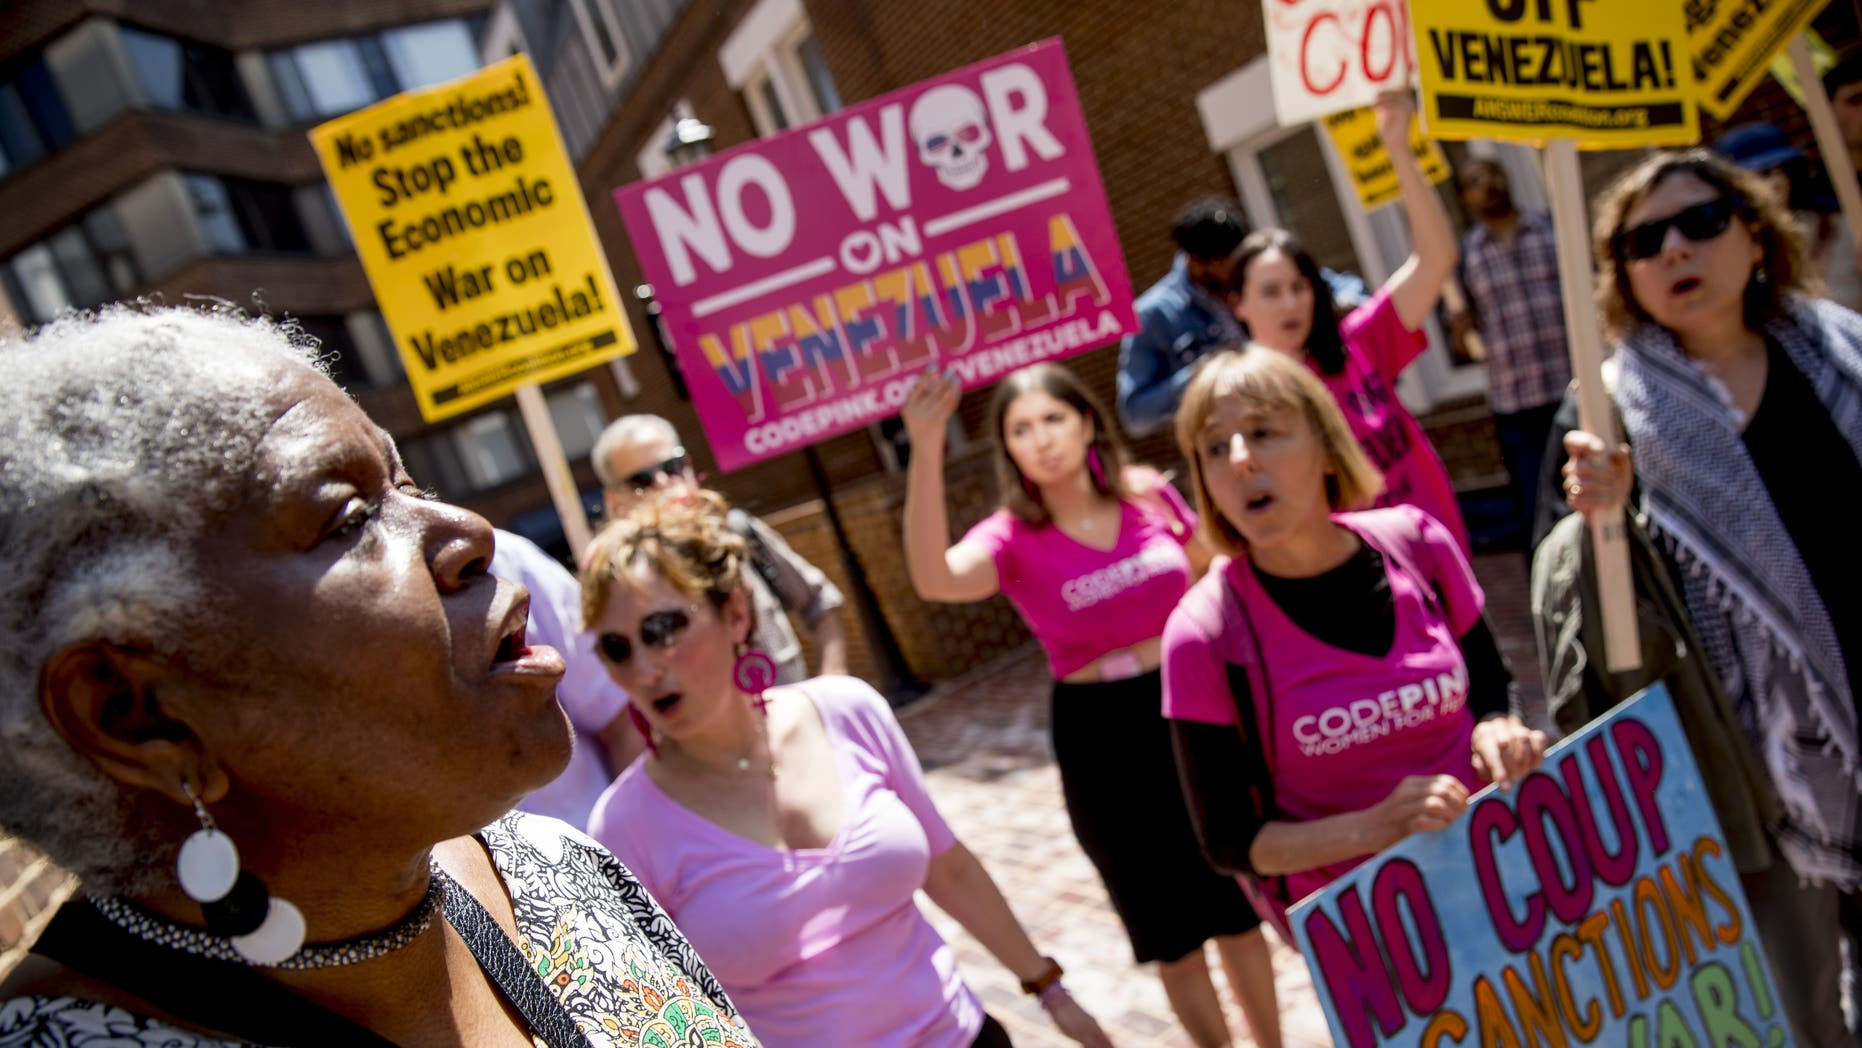 U.S. activist Medea Benjamin, co-founder of the antiwar group Code Pink, second from right, and others, sing together outside the Venezuelan Embassy in Washington on Thursday. Supporters of interim government opposition leader Juan Guaido have blocked the entrances to the embassy, cutting off supplies to backers of embattled leader Nicolas Maduro supporters occupying the building. (AP Photo/Andrew Harnik)